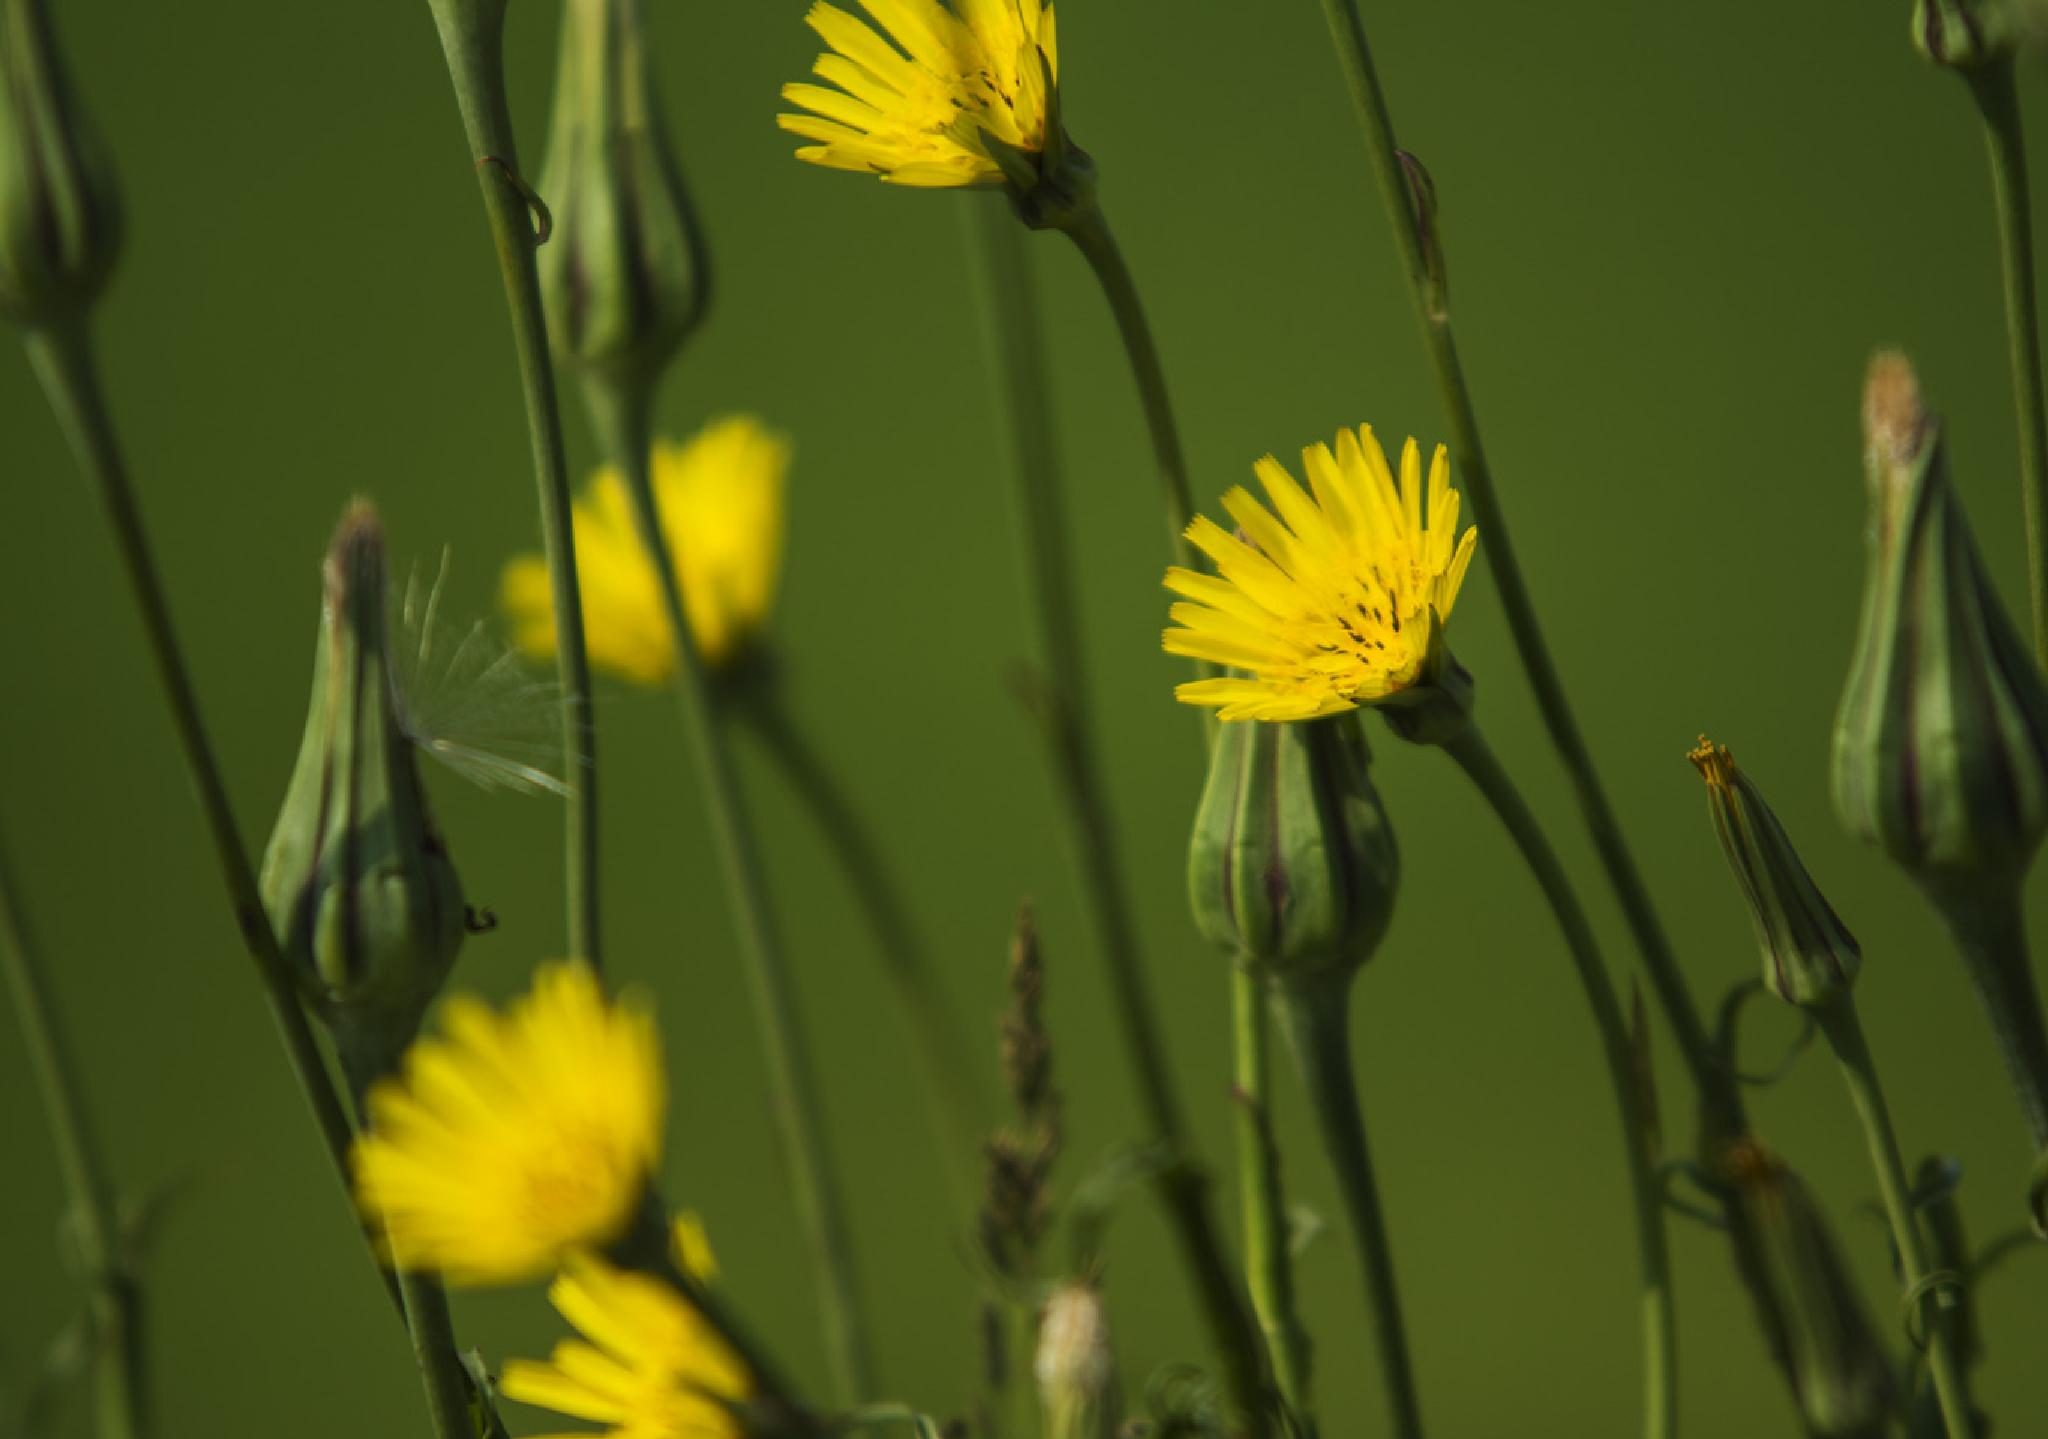 The Beauty of Weeds by Wayne L. Talbot